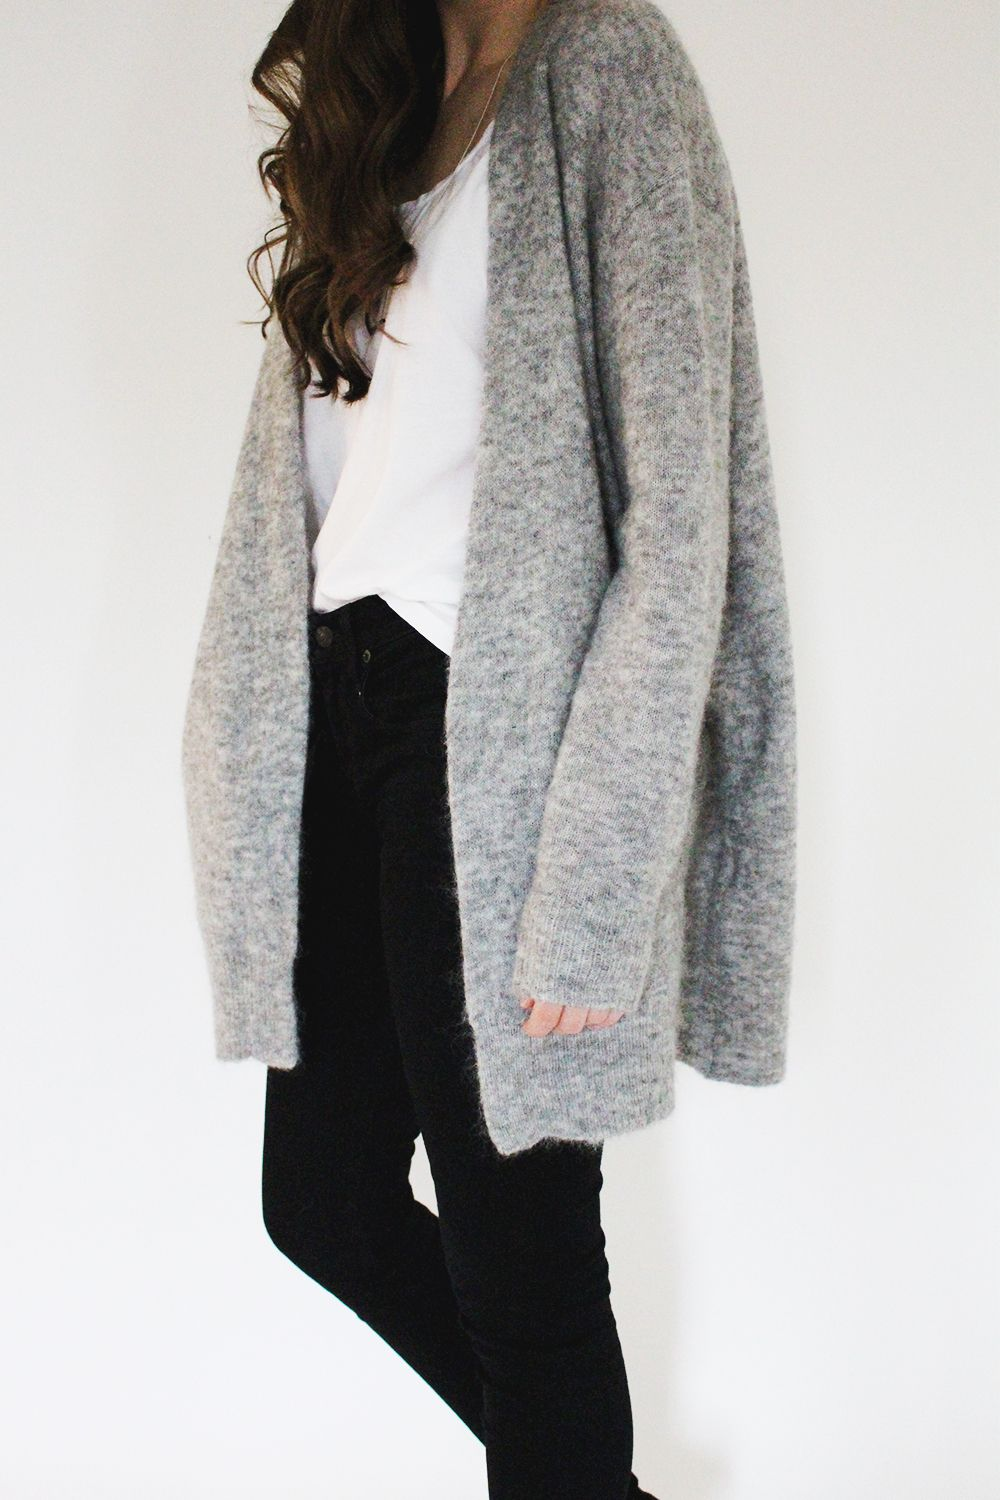 raddestlooks: Raddest Looks On The Internet:... (She danced all ...